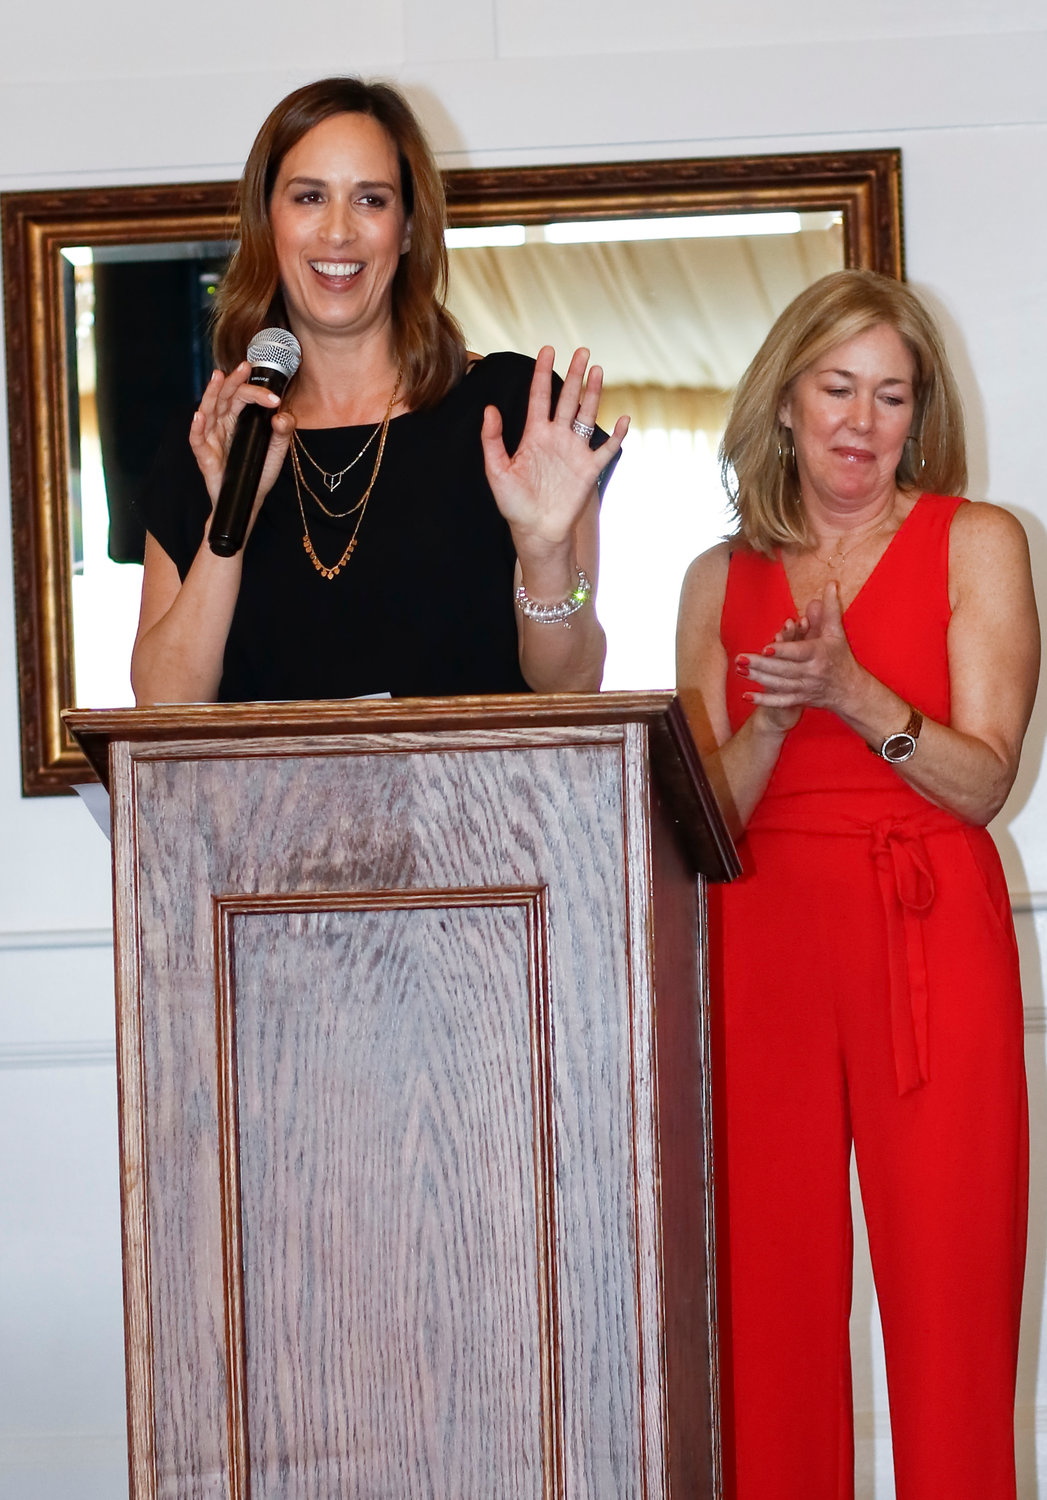 Erin O'Sullivan, left, alongside Peg McDonald, spoke to the crowd about the Coalition's recent accomplishments.